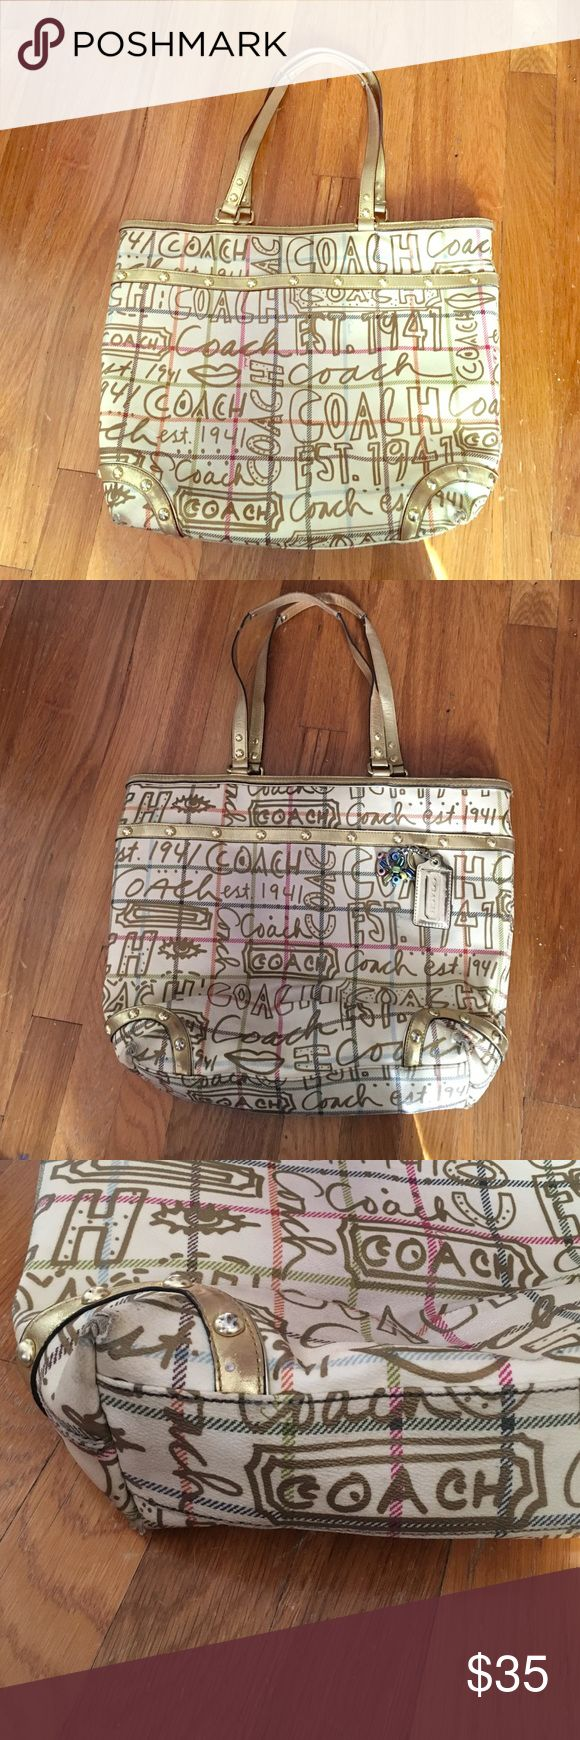 Coach Limited Edition Gold Tote Bag Big Tote Bag. Used but still in good condition. Very spacious with multiple pockets. The only defect of the corners of the Bag shown in last picture - still beautiful. Measurements: 14x12x4 Coach Bags Totes